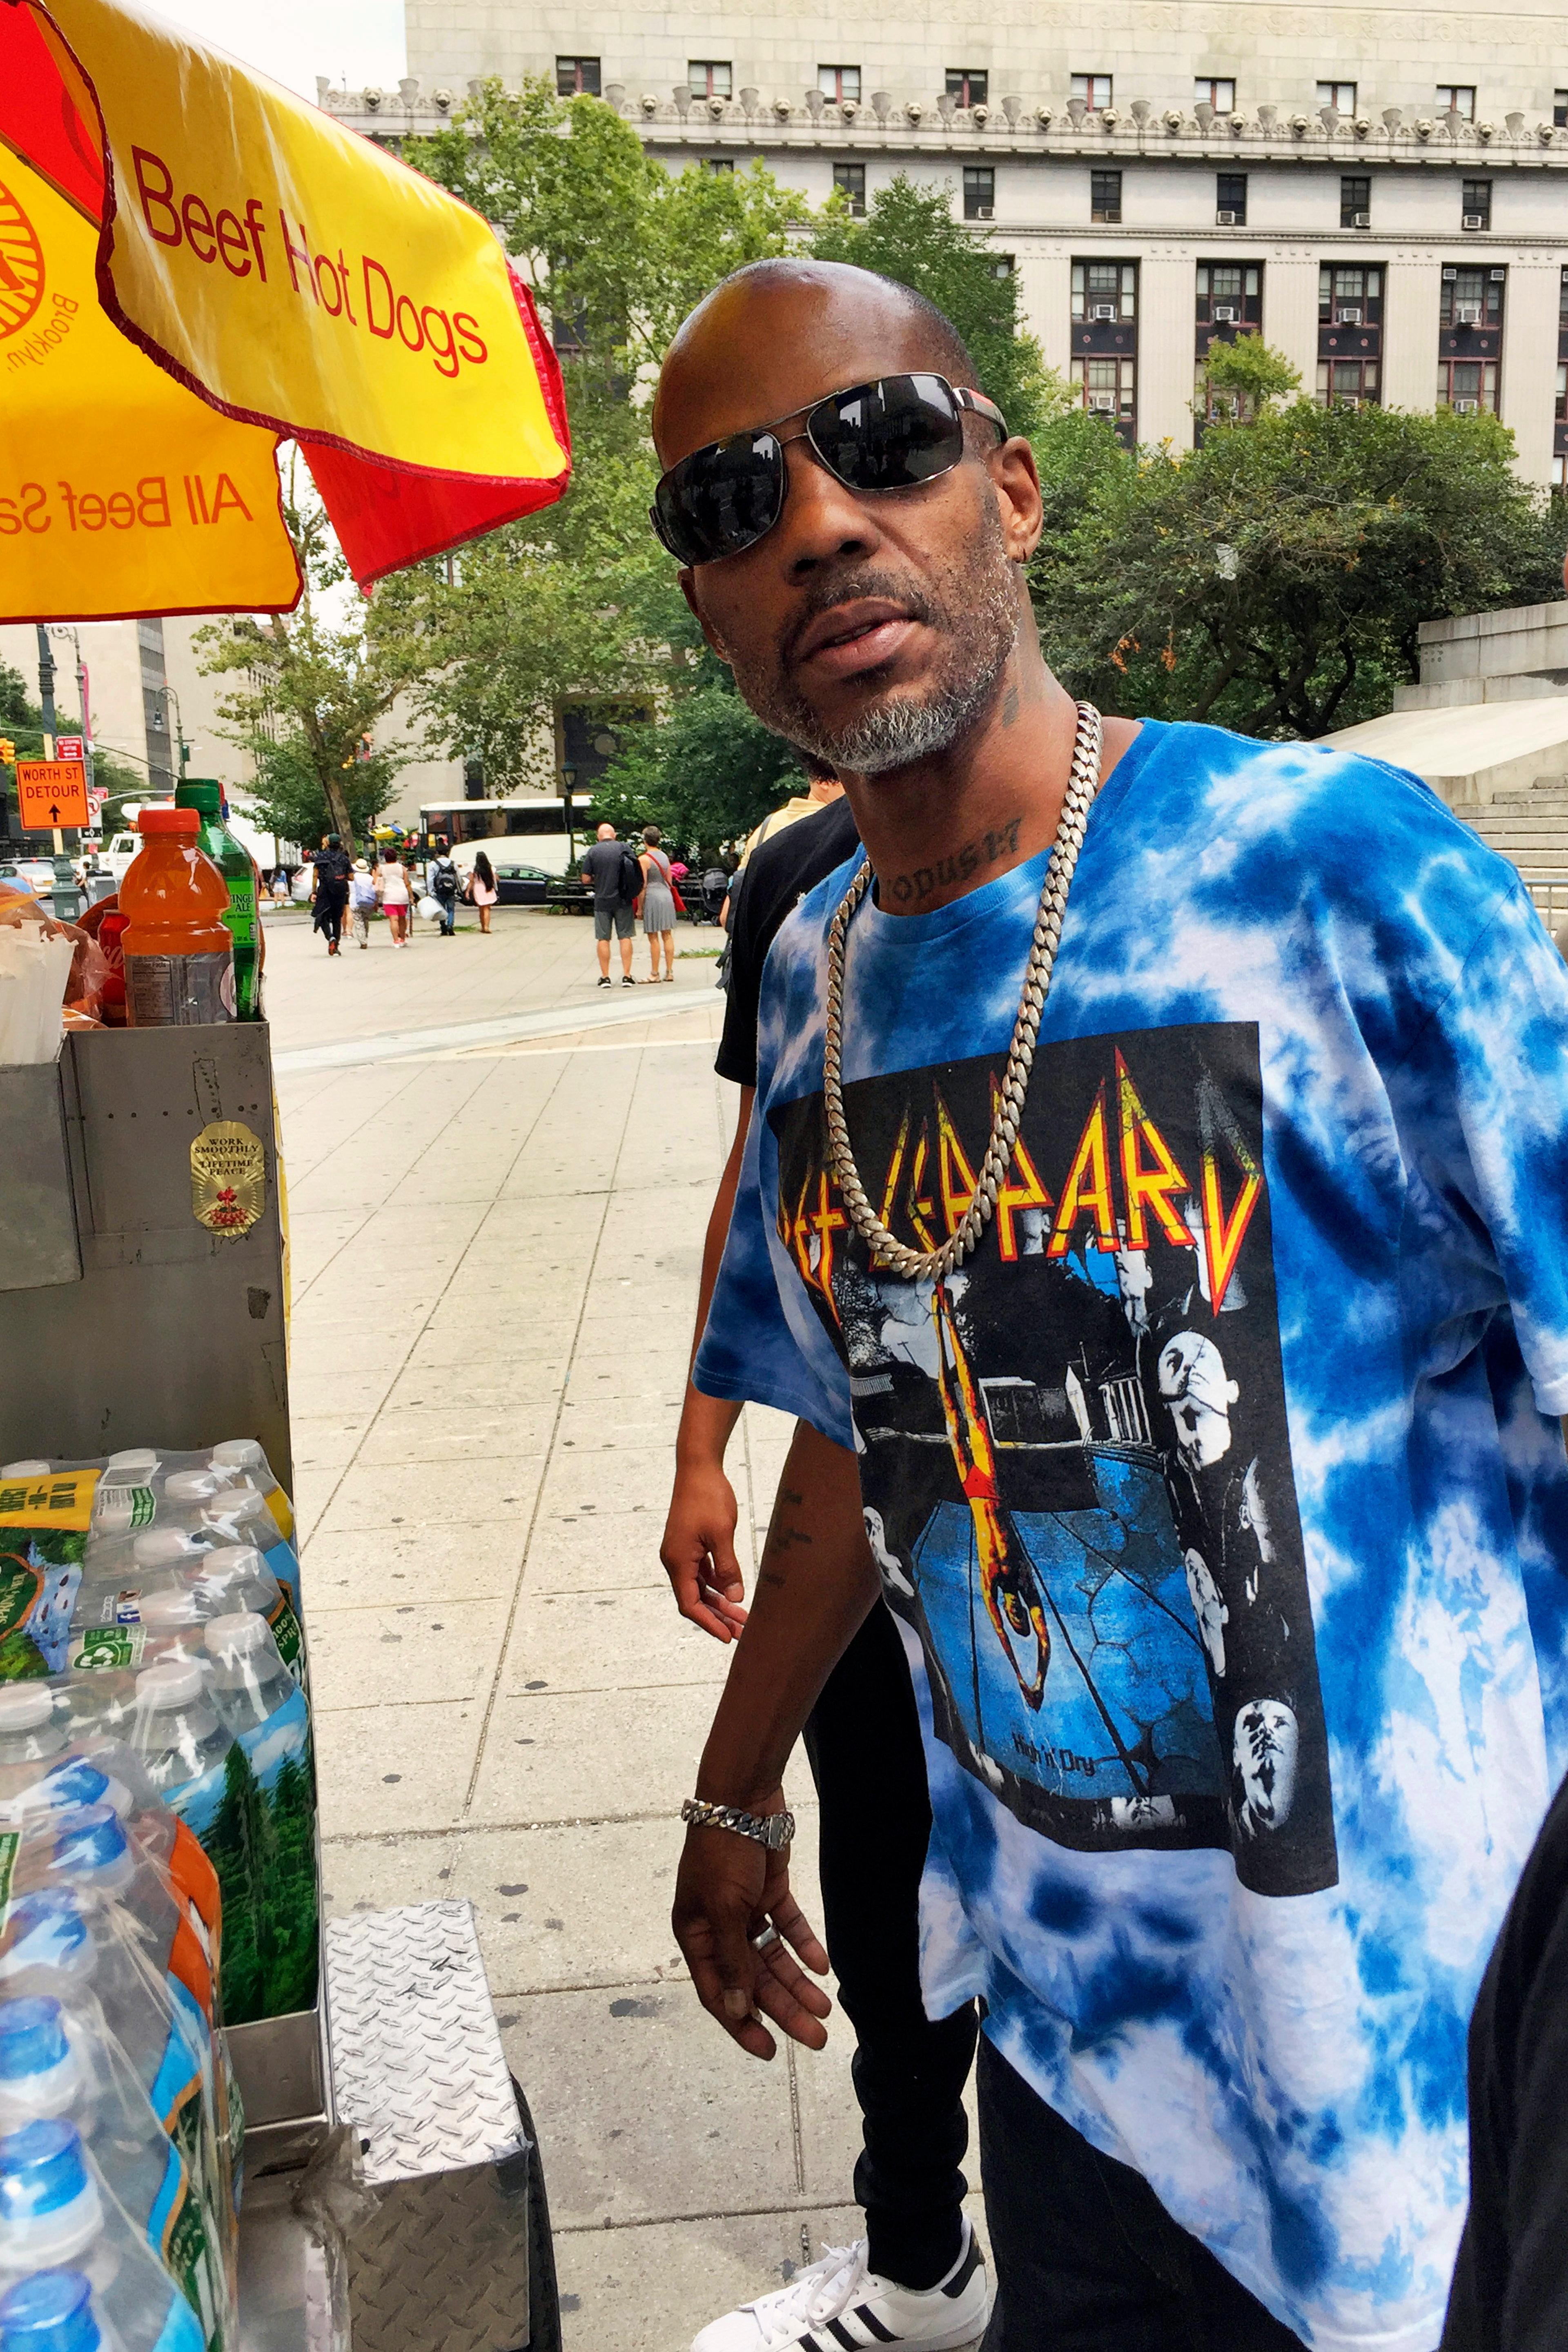 Rapper DMX, whose given name is Earl Simmons, stops to buy a hot dog outside federal court, in New York, Friday, Aug. 11, 2017. DMX, who prosecutors say owes $1.7 million in taxes, was ordered confined to his suburban New York City home Friday by a judge who said he repeatedly violated bail conditions on the tax fraud charges. (AP Photo/Larry Neumeister)